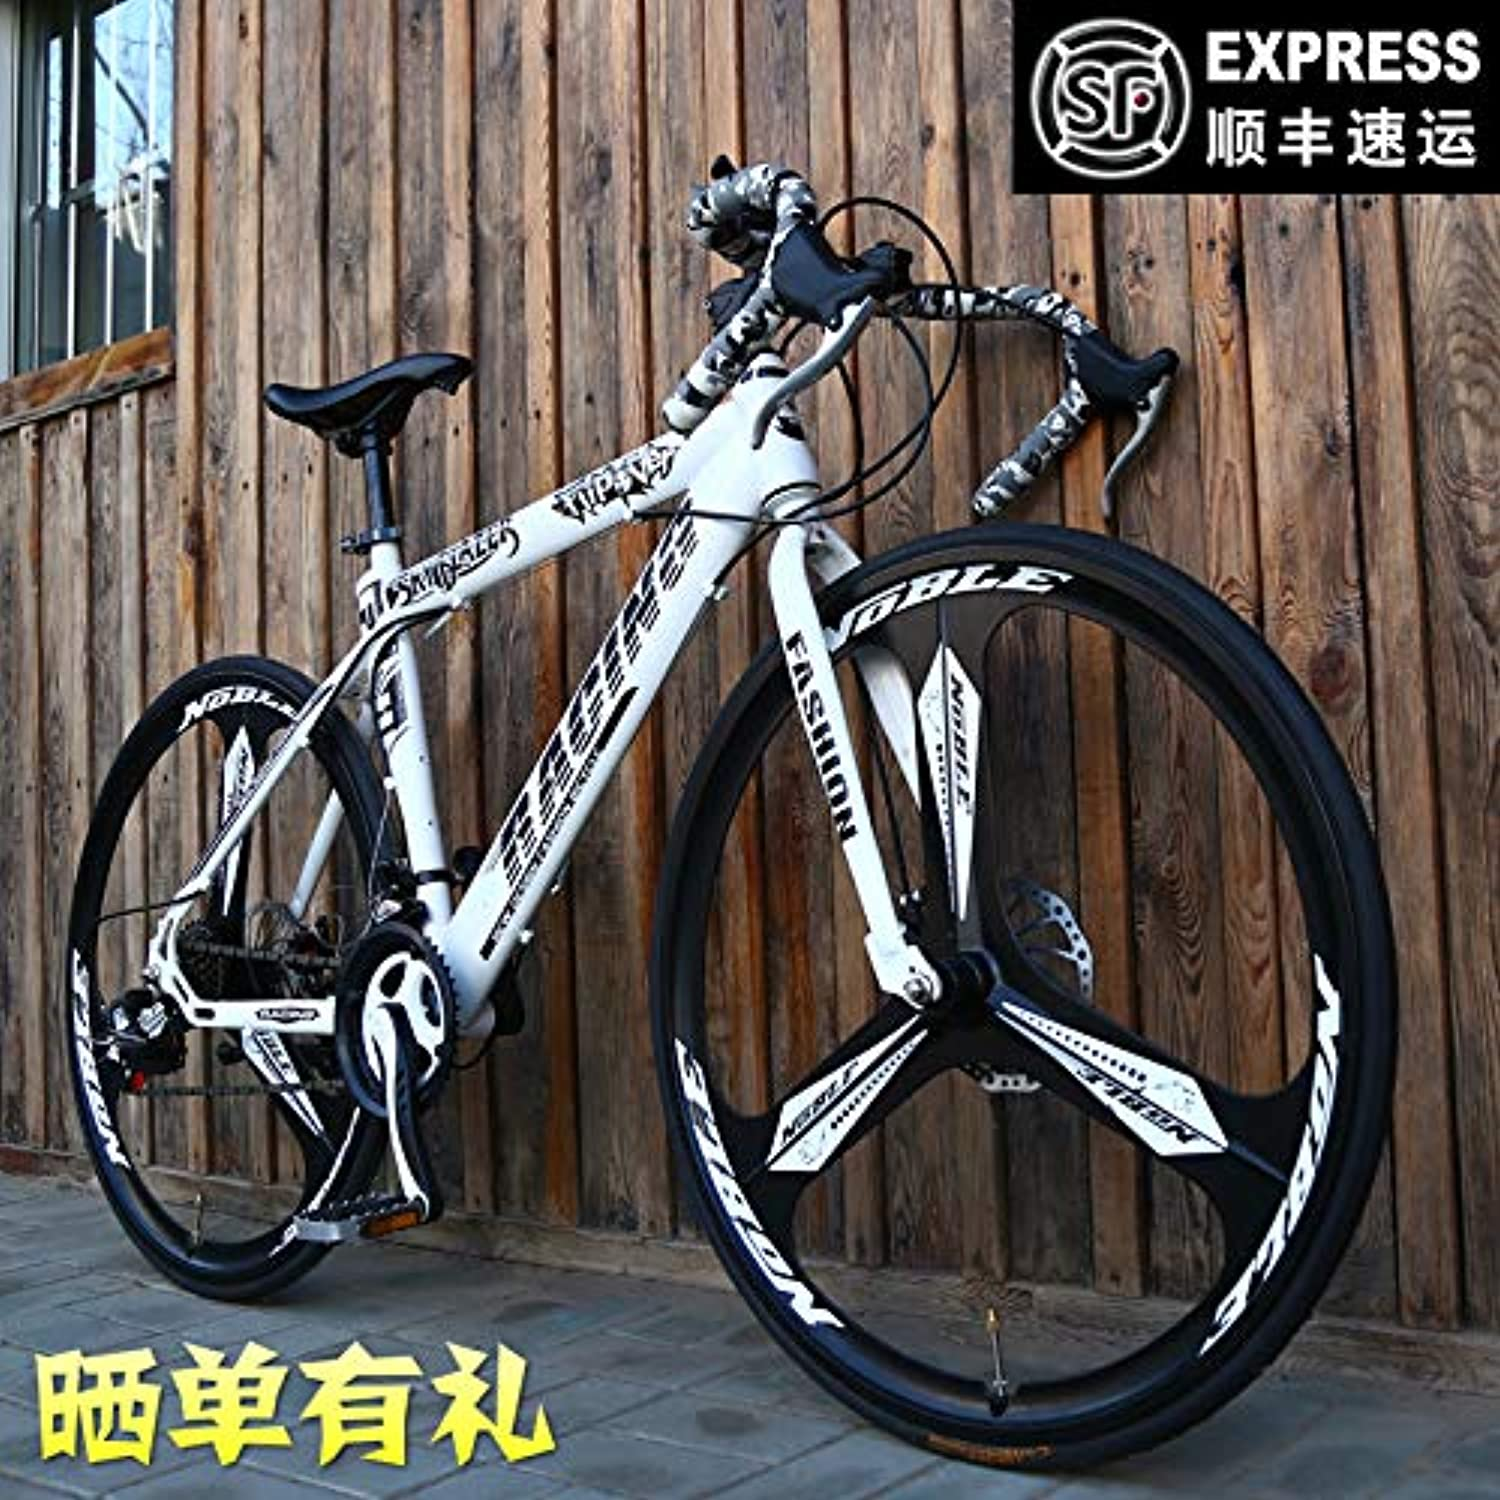 Free Shipping 26inch Variable Speed Mito Dead Fly Bicycle Road Racing 21 Speed Dual disc Brakes Bend The Male and Female Students